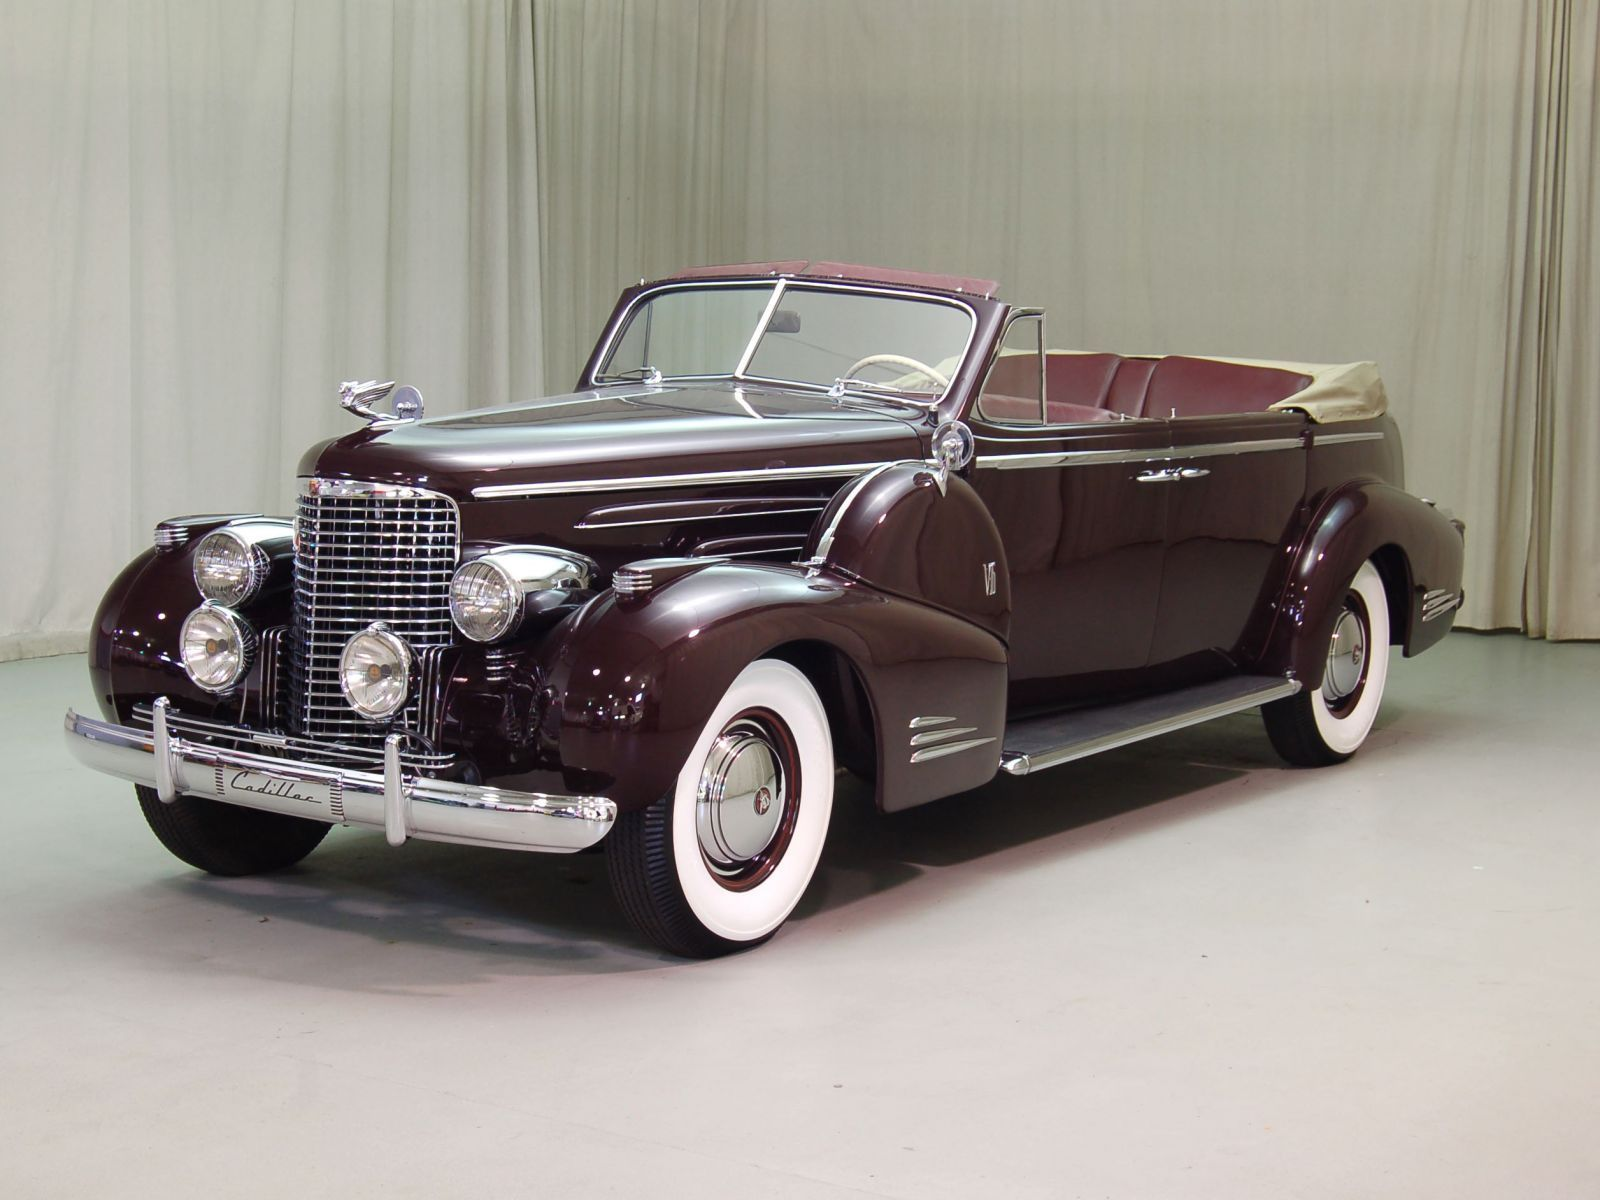 1939 Cadillac V16 Fleetwood Convertible - Hyman Ltd. Classic Cars ...